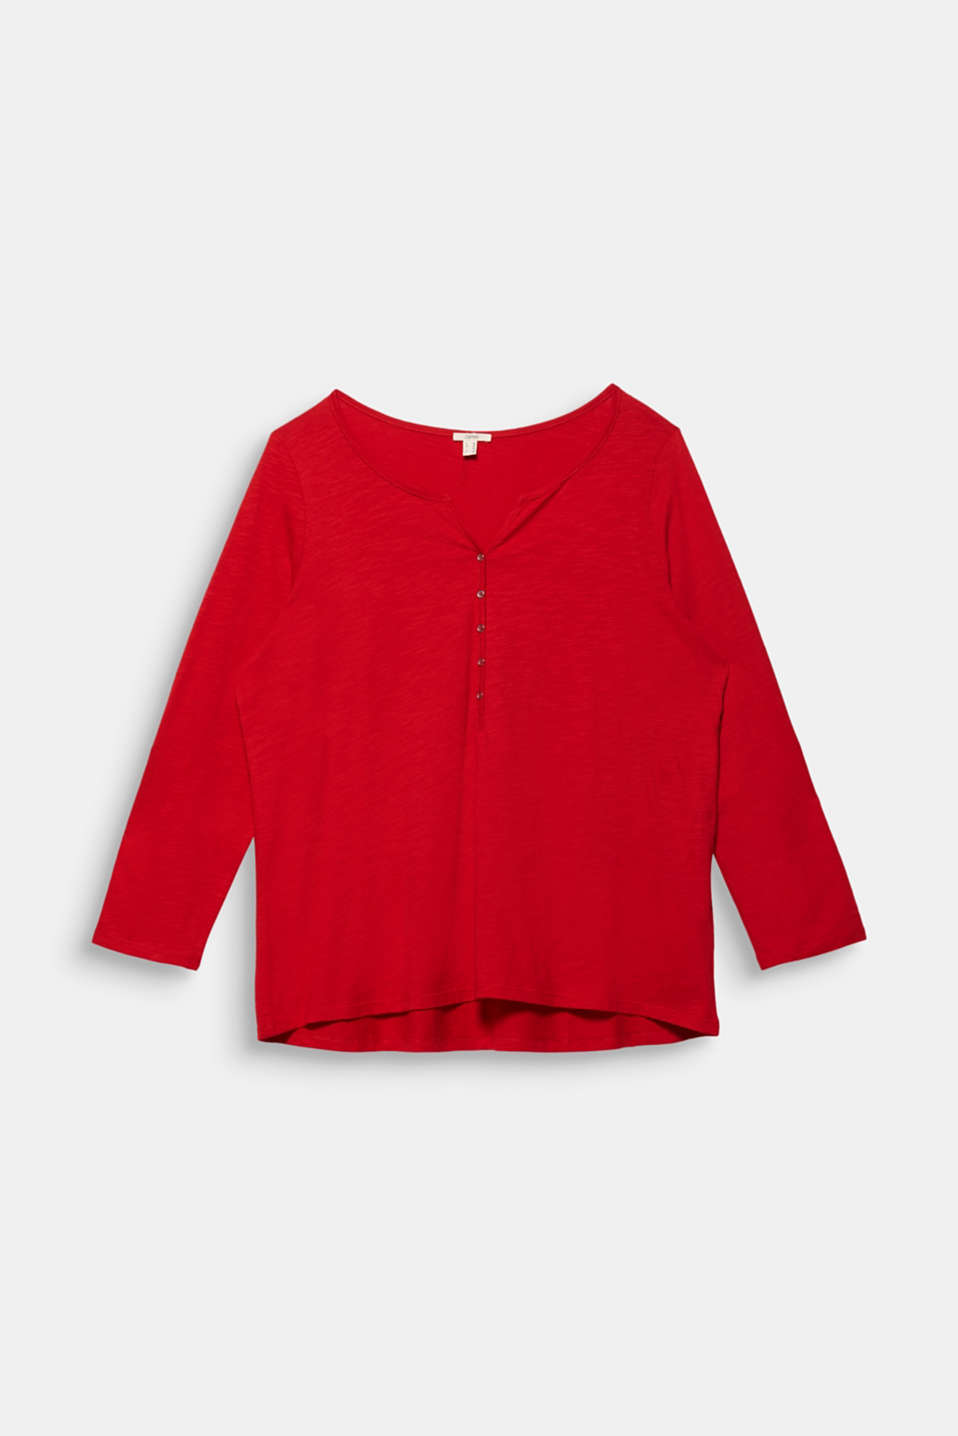 CURVY long sleeve top, organic cotton, DARK RED, detail image number 6